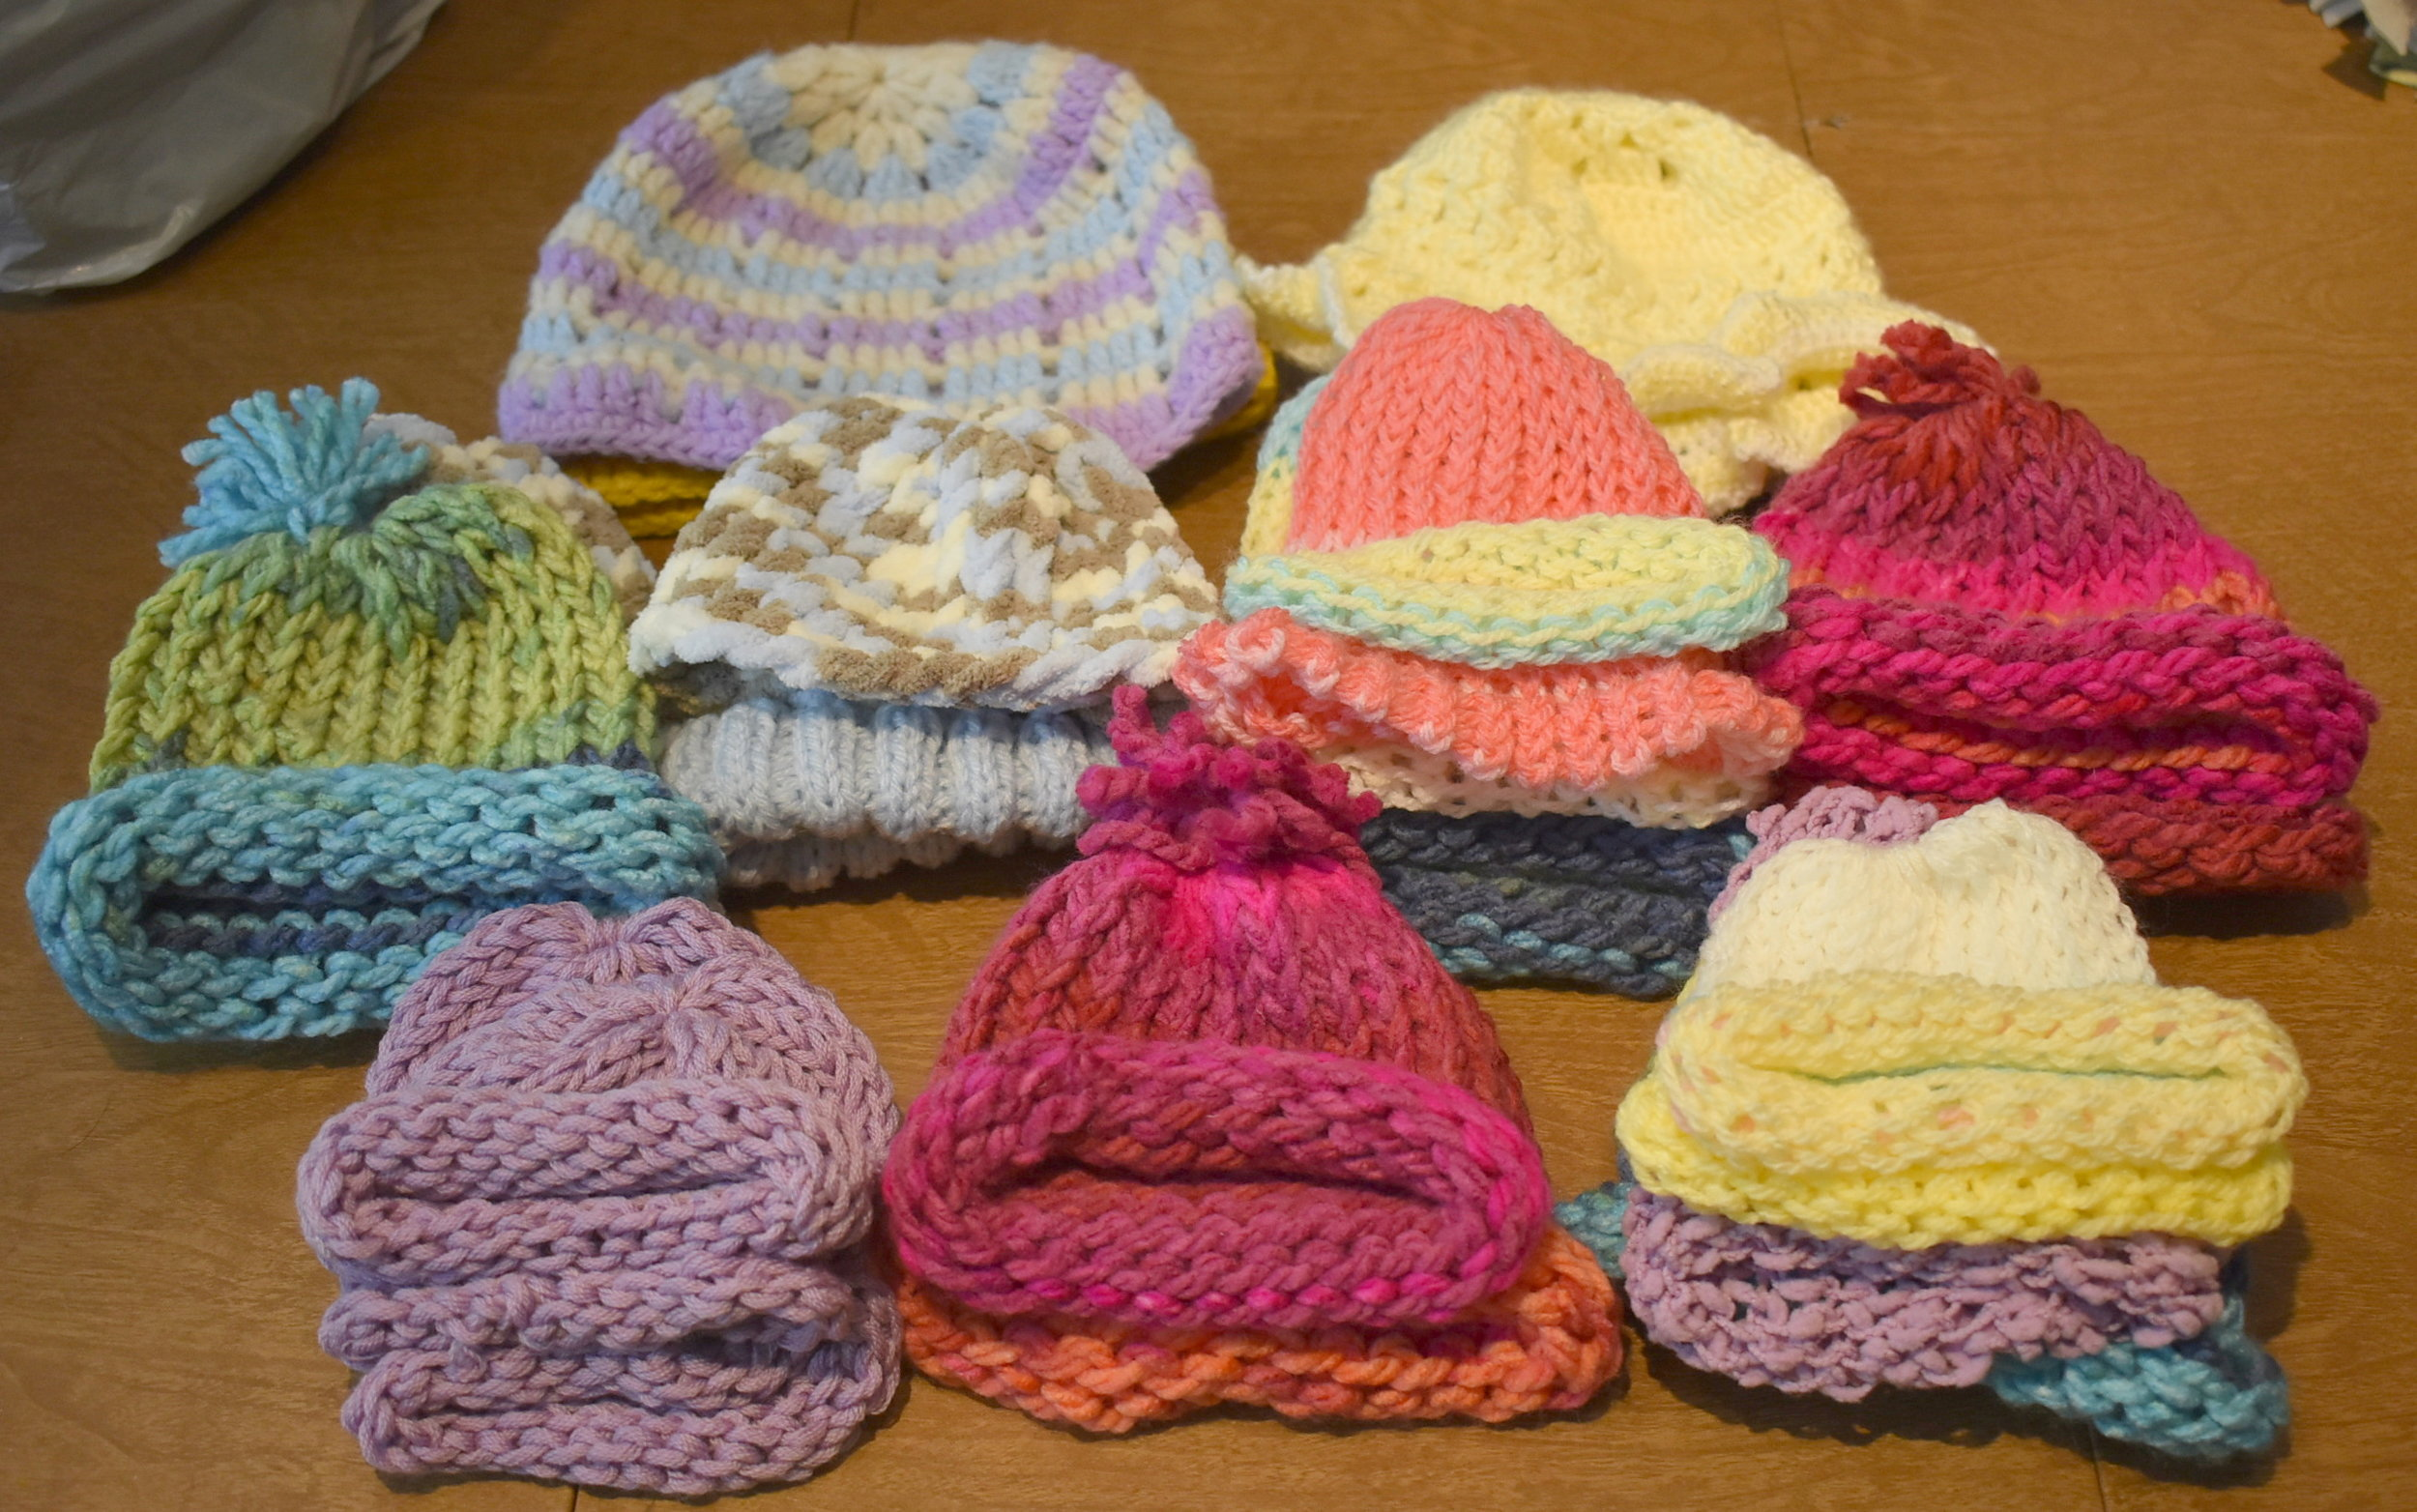 13 knit hats for newborns at Fairview Hospital in Wyoming (MN) and 10 knit hats for pediatric cancer patients at Children's Hospital in Minneapolis.